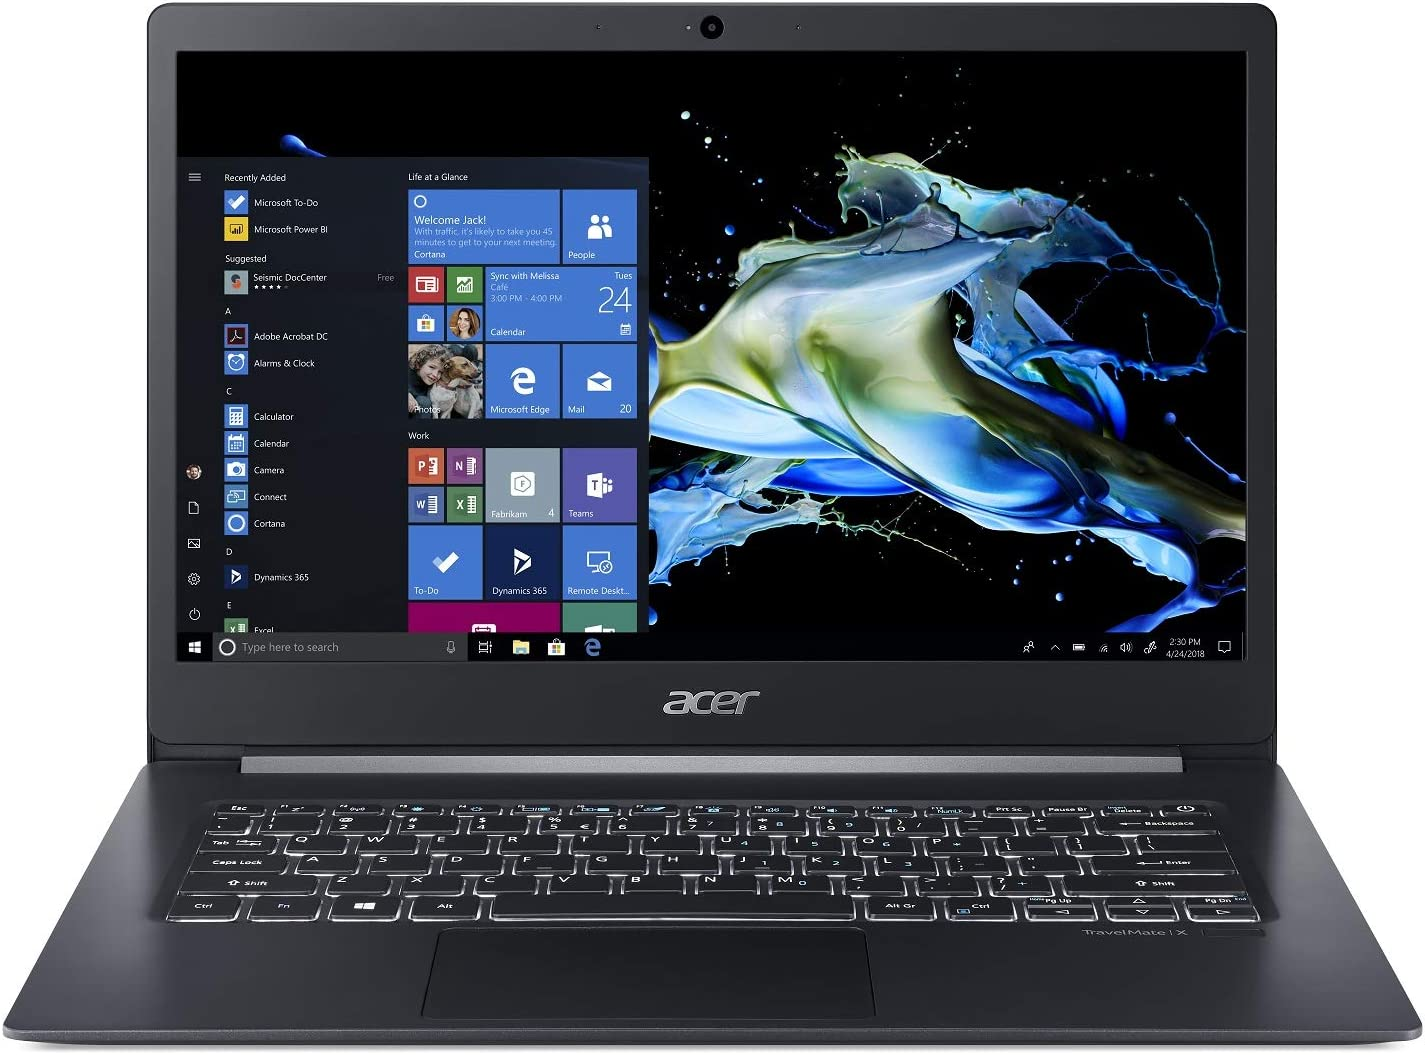 Acer 14T Ci78565 16G 512SSDW10P, Black, 14-14.99 inches